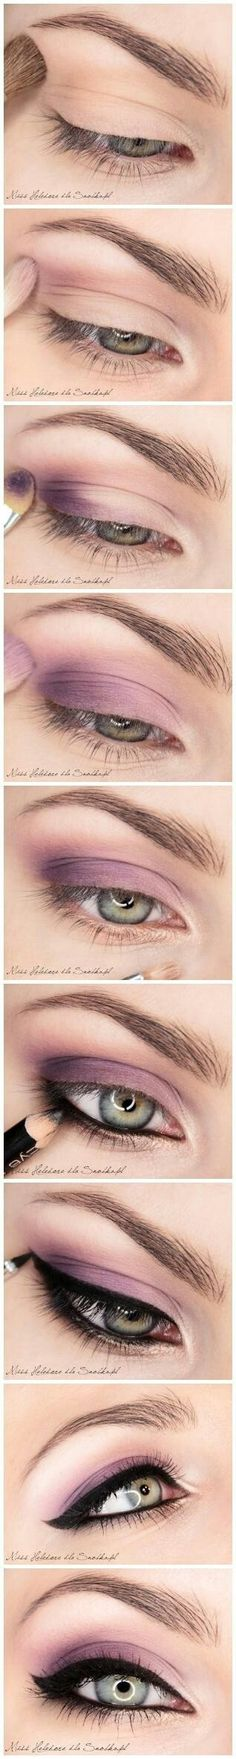 Soooooo gorgeous for those with green eyes, or any one with green specks in their blue or hazel eyes! #MakeupTips #Makeup #MakeupTutorial #MakeupIdeas #EyeMakeupTips #BridalMakeupTips #MakeupTipsAndTricks #MakeupTipsForBrownEyes #MakeupTipsForBlueEyes #SimpleMakeupTips #WeddingMakeupTips #MakeupTipsVideos #EyesMakeupTips #KimKardashianMakeupTips #FaceMakeupTips #PartyMakeupTips #MakeupTipsForOilySkin #Eye MakeupTipsWithPictures #MakeupTipsForBeginners